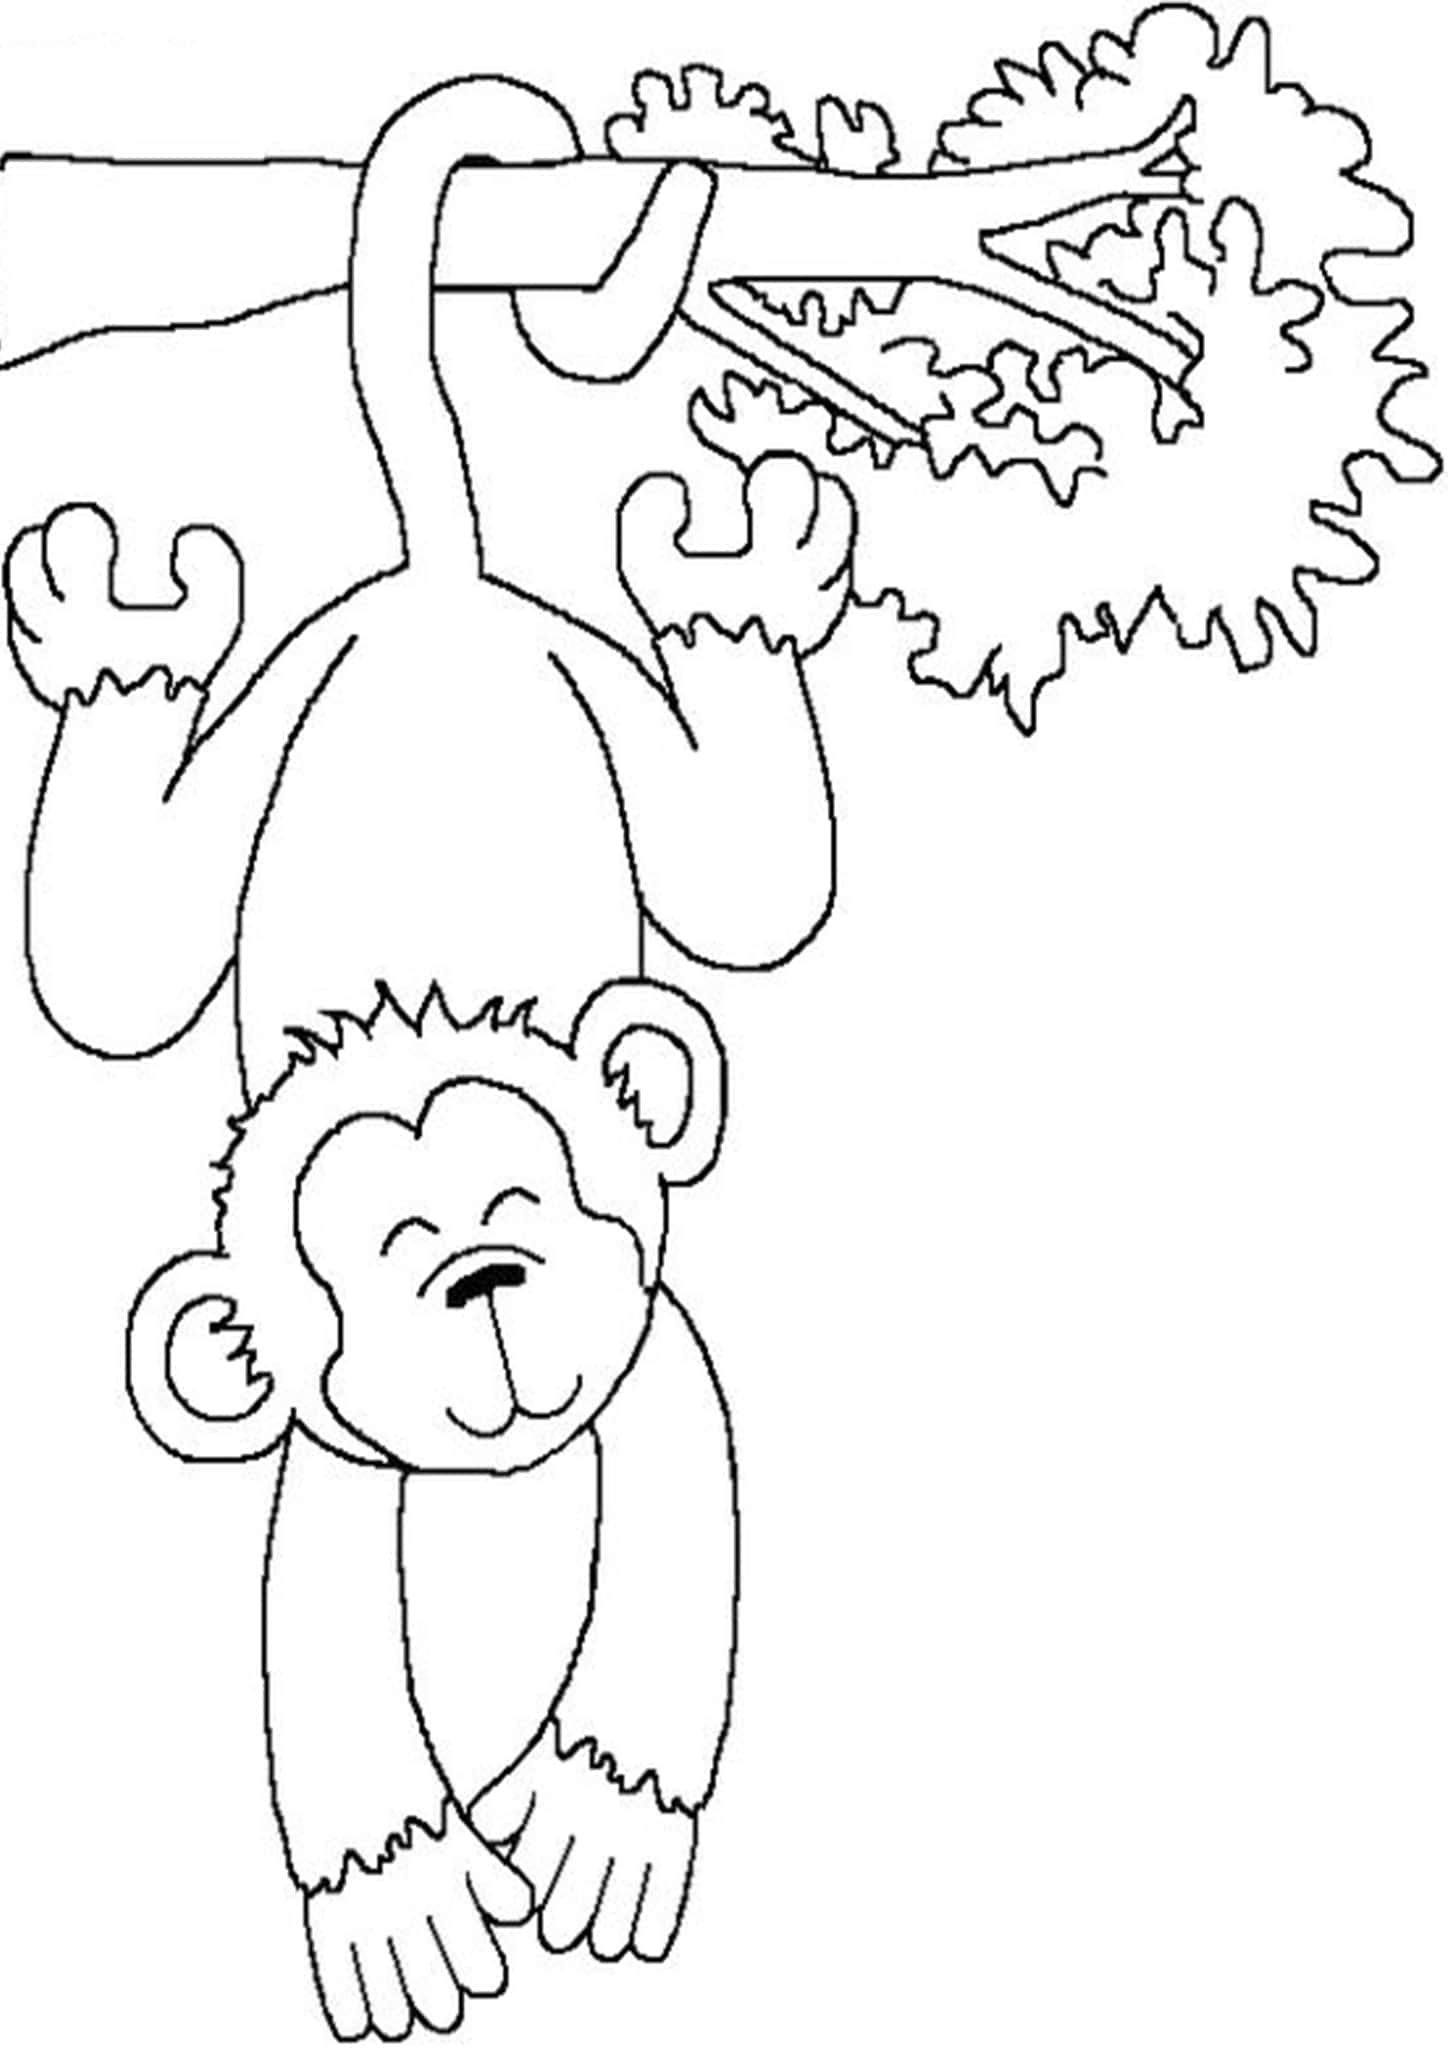 Free Easy To Print Monkey Coloring Pages Monkey Coloring Pages Monkey Crafts Coloring Pages